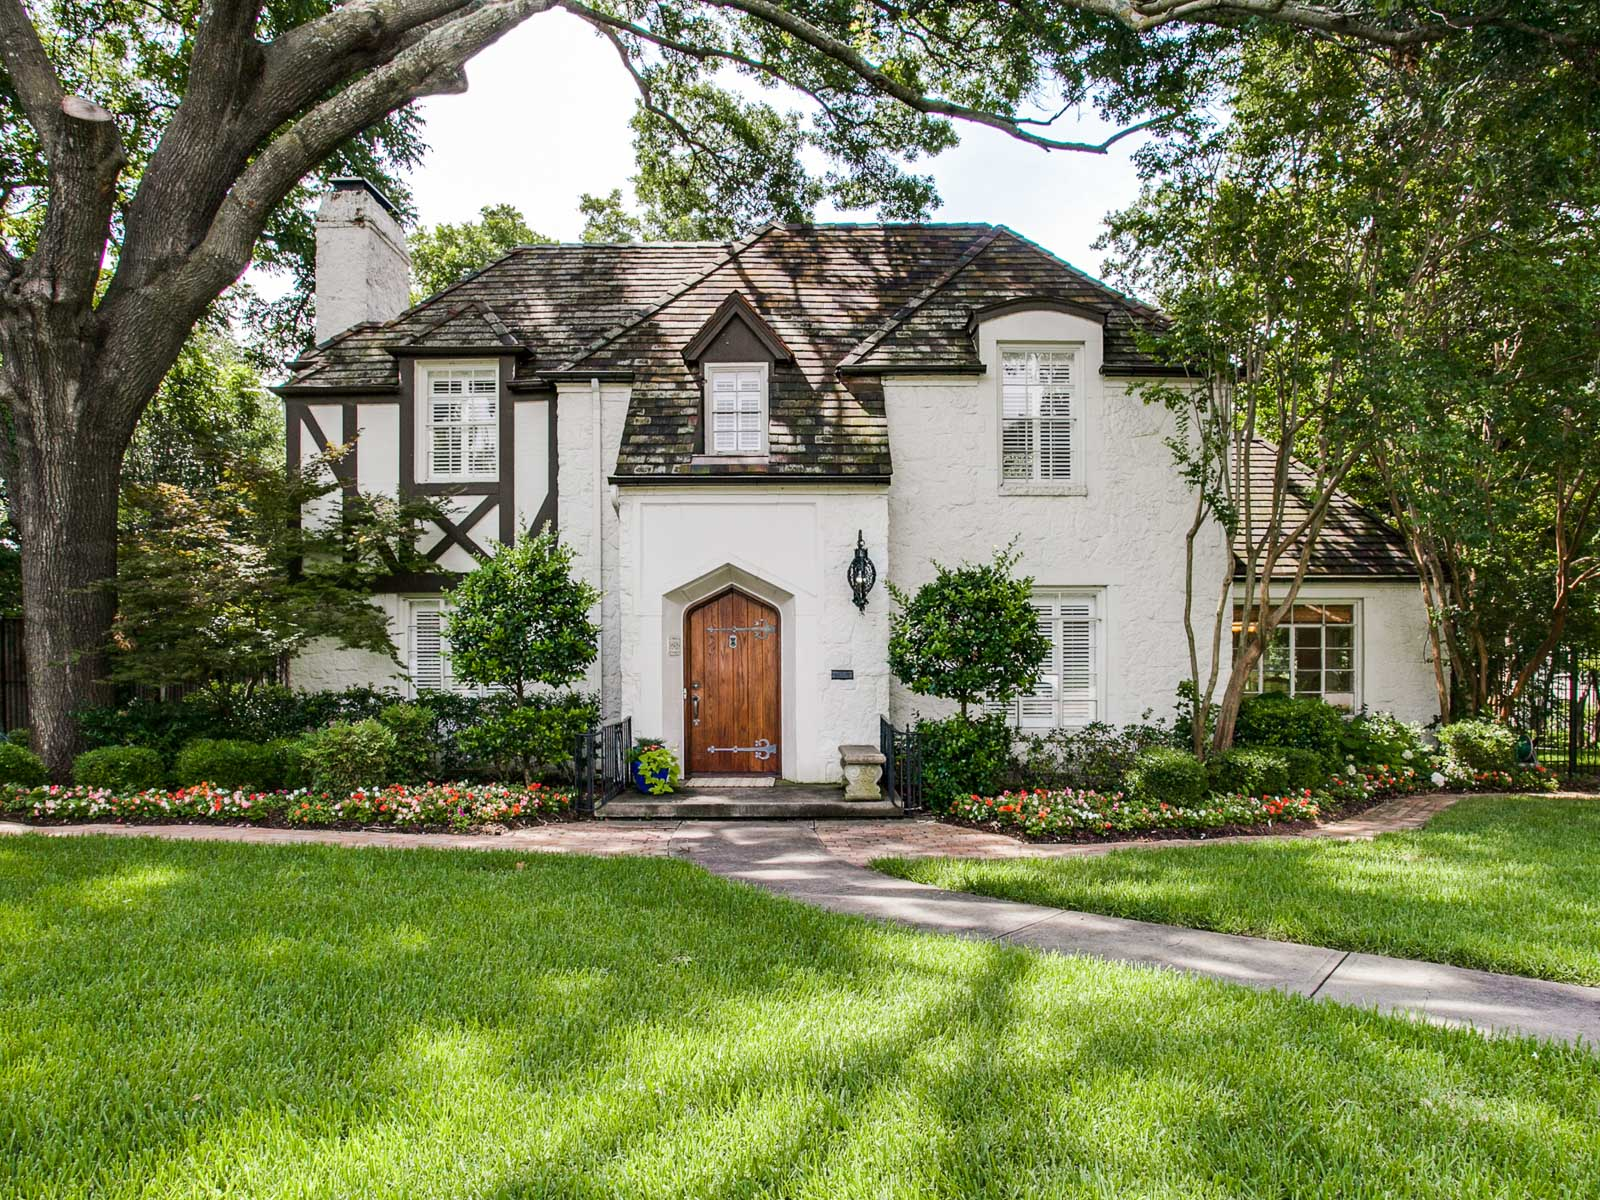 단독 가정 주택 용 매매 에 Charming Home in the Heart of Lakewood 6906 Lakewood Boulevard Dallas, 텍사스 75214 미국